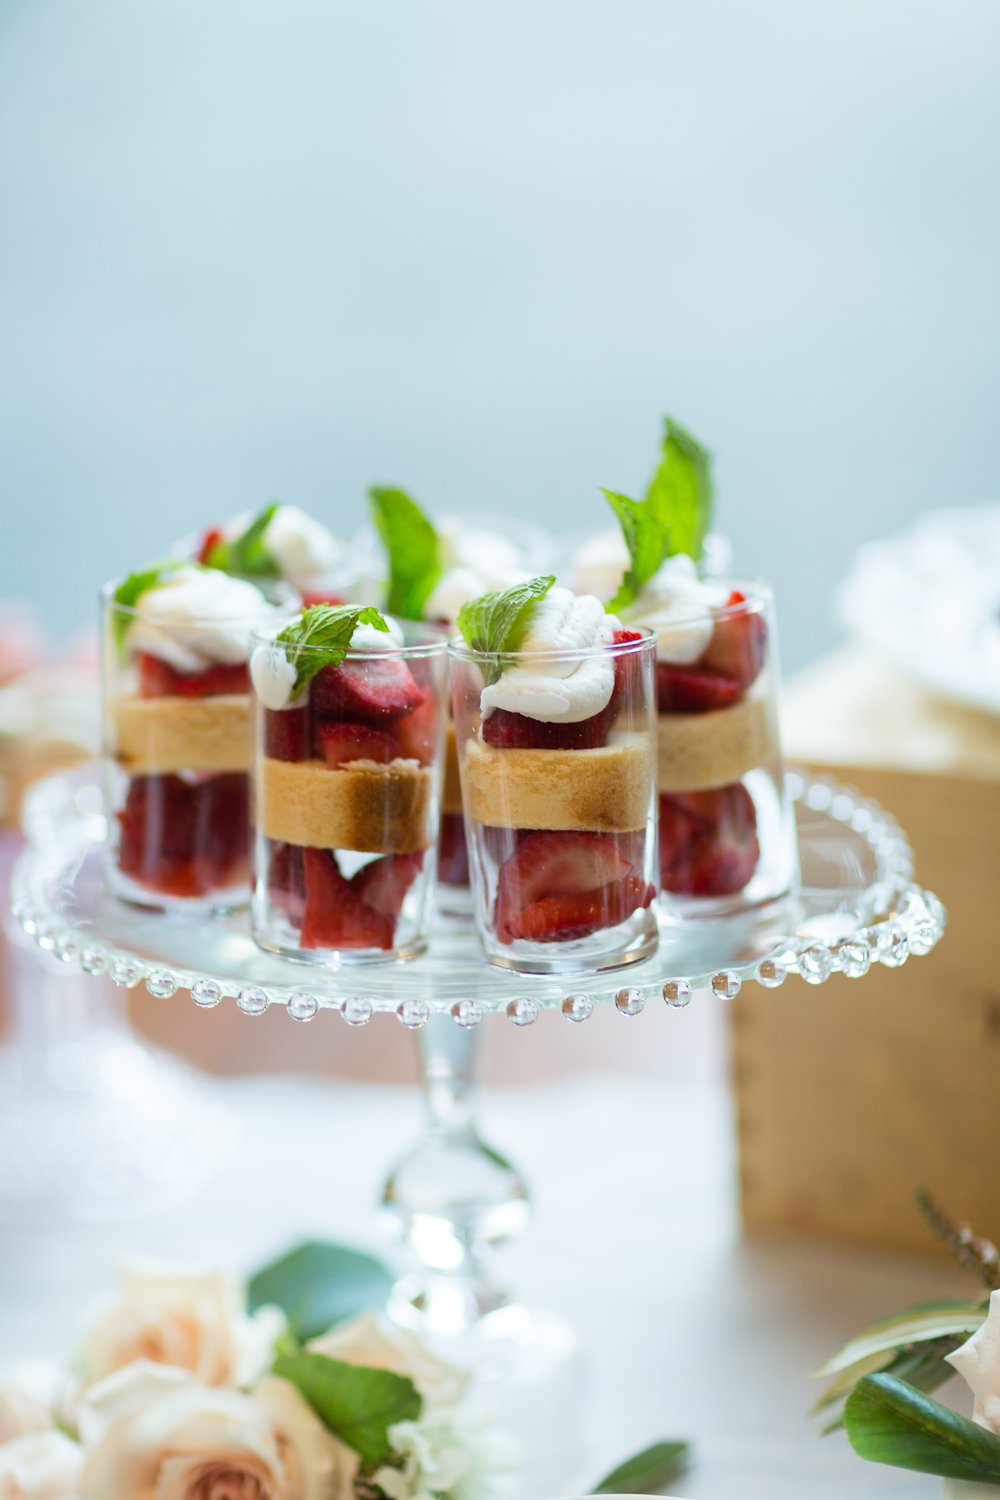 Strawberry Shortcake dessert by Farm to Table Catering